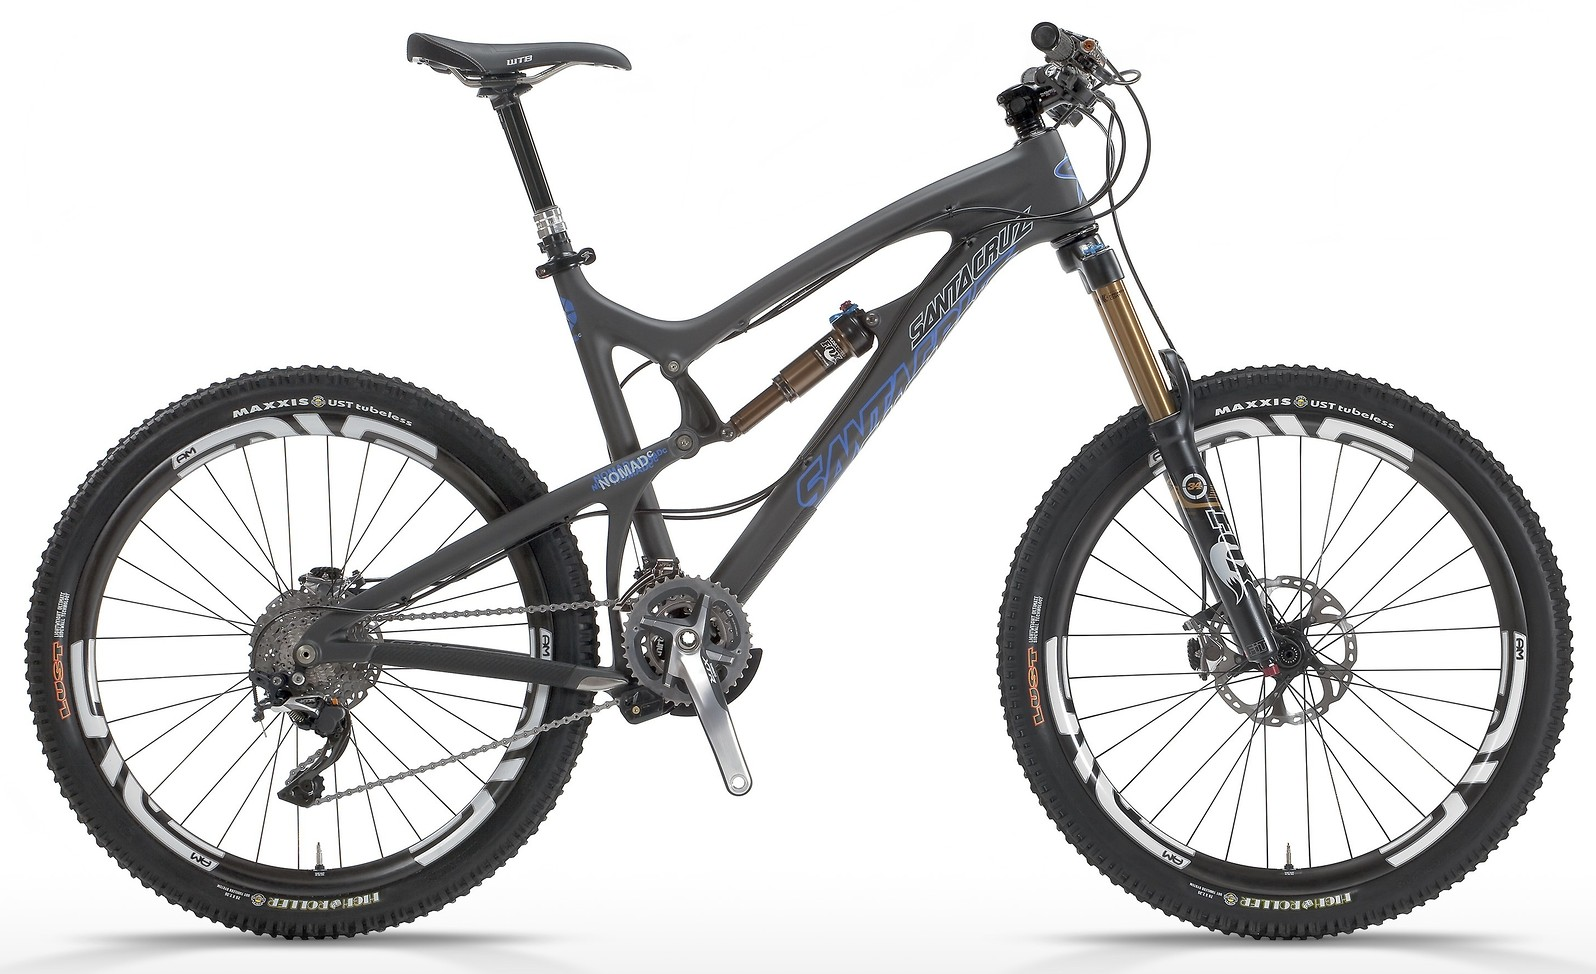 2014 Santa Cruz Nomad Carbon XX1 AM Bike 2013 NOMAD Ccatalogflat